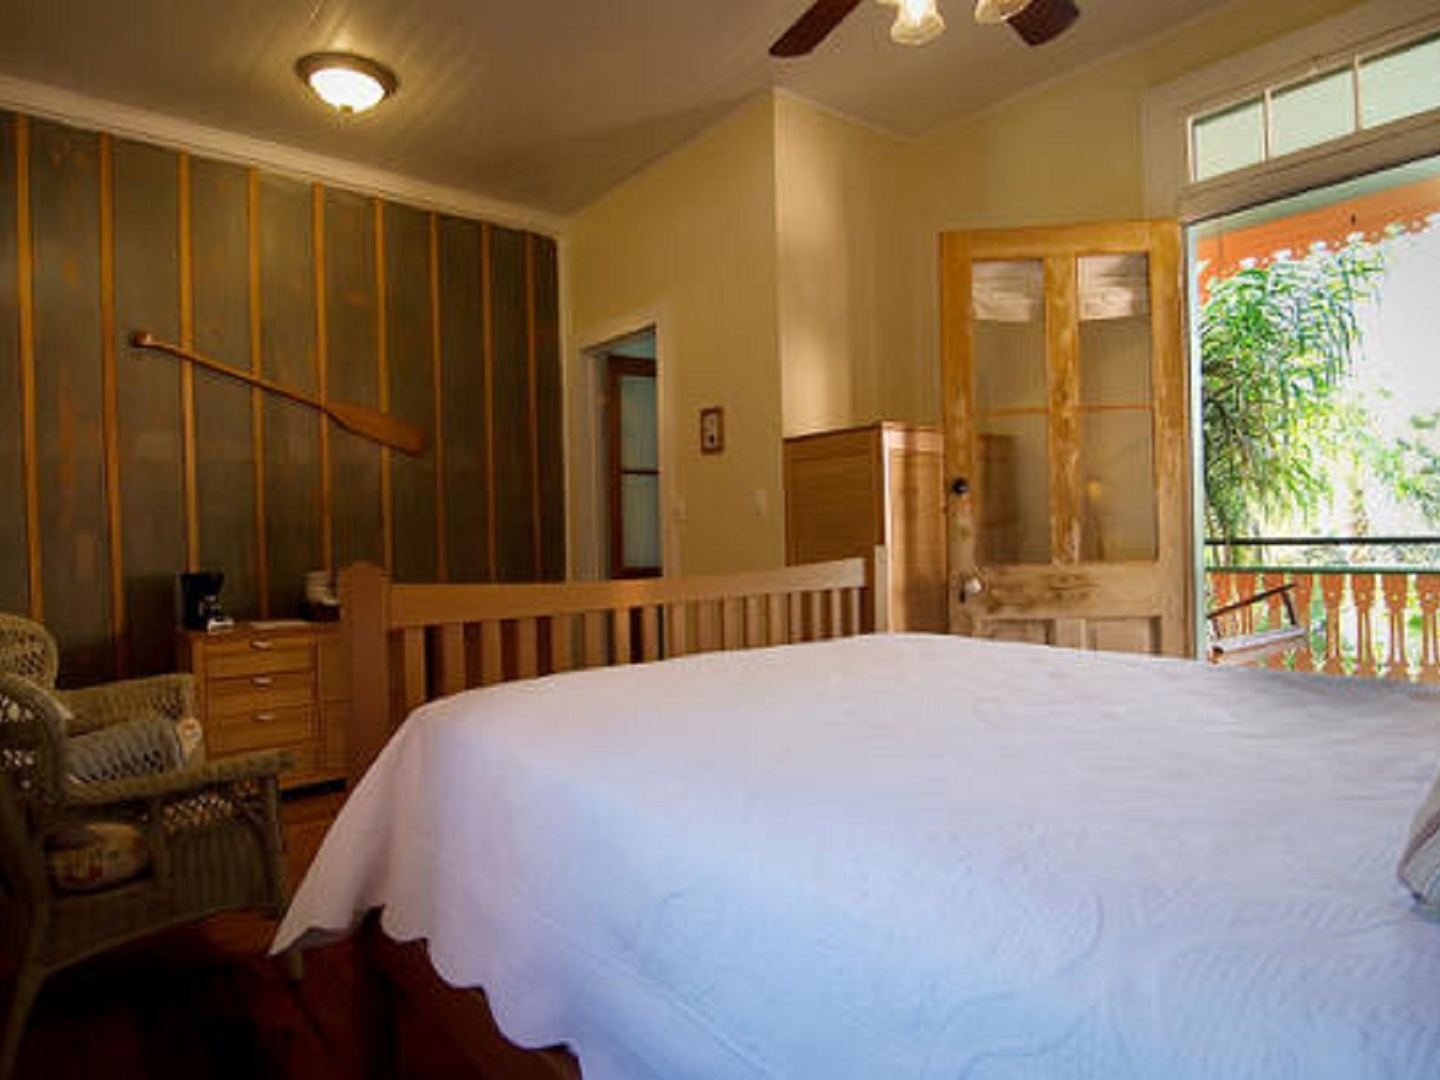 A bedroom with a large bed in a room at Marvilla Guest House.